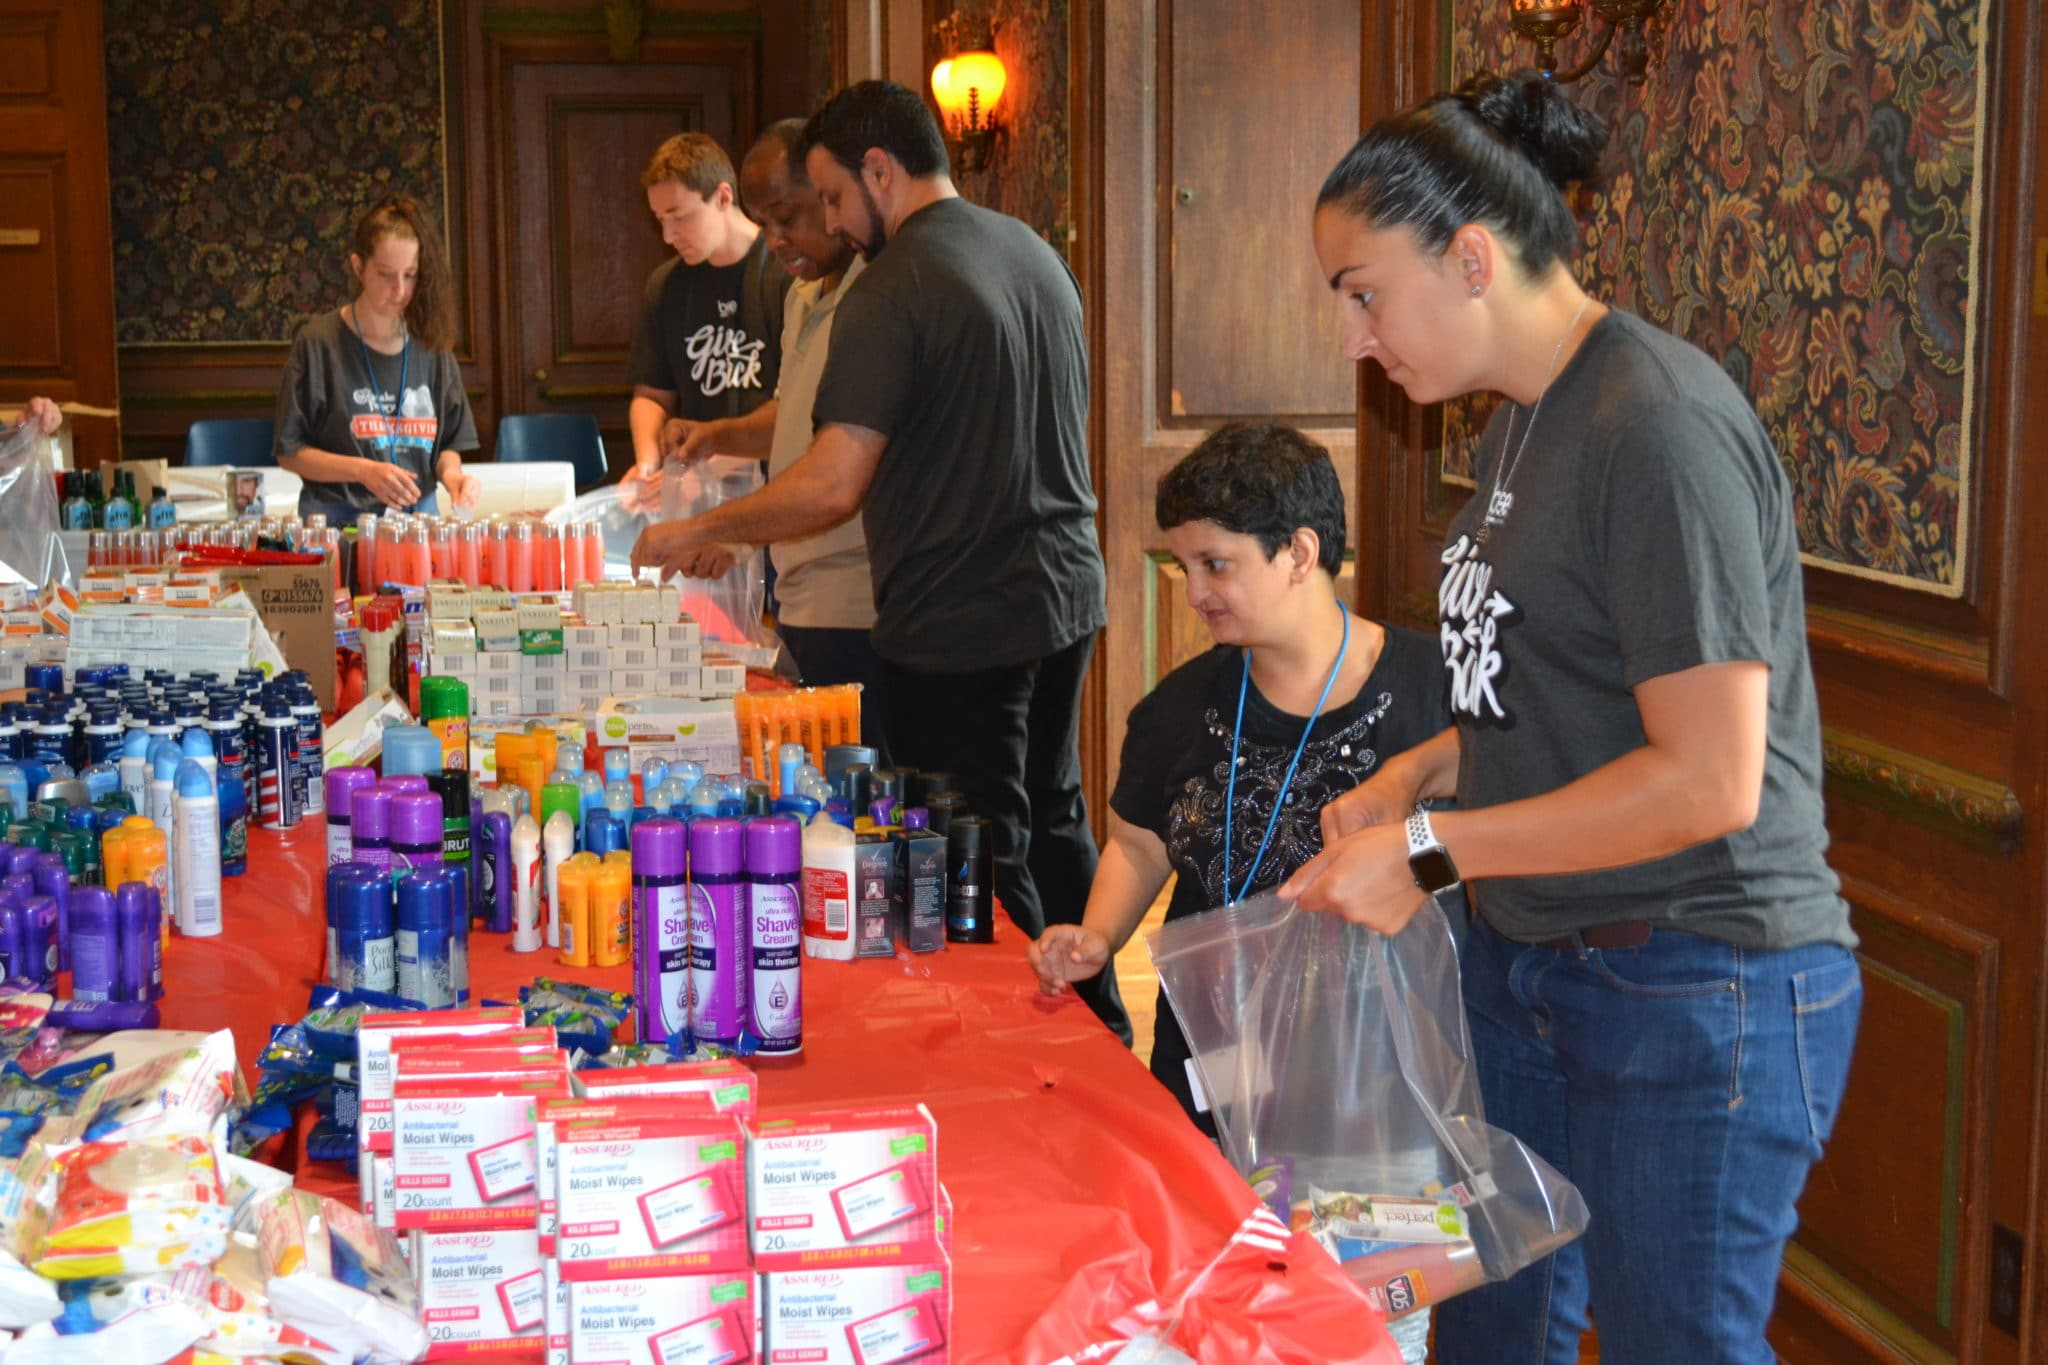 BSE Global and AHRC Nassau Day Hab put together care packages for local veterans